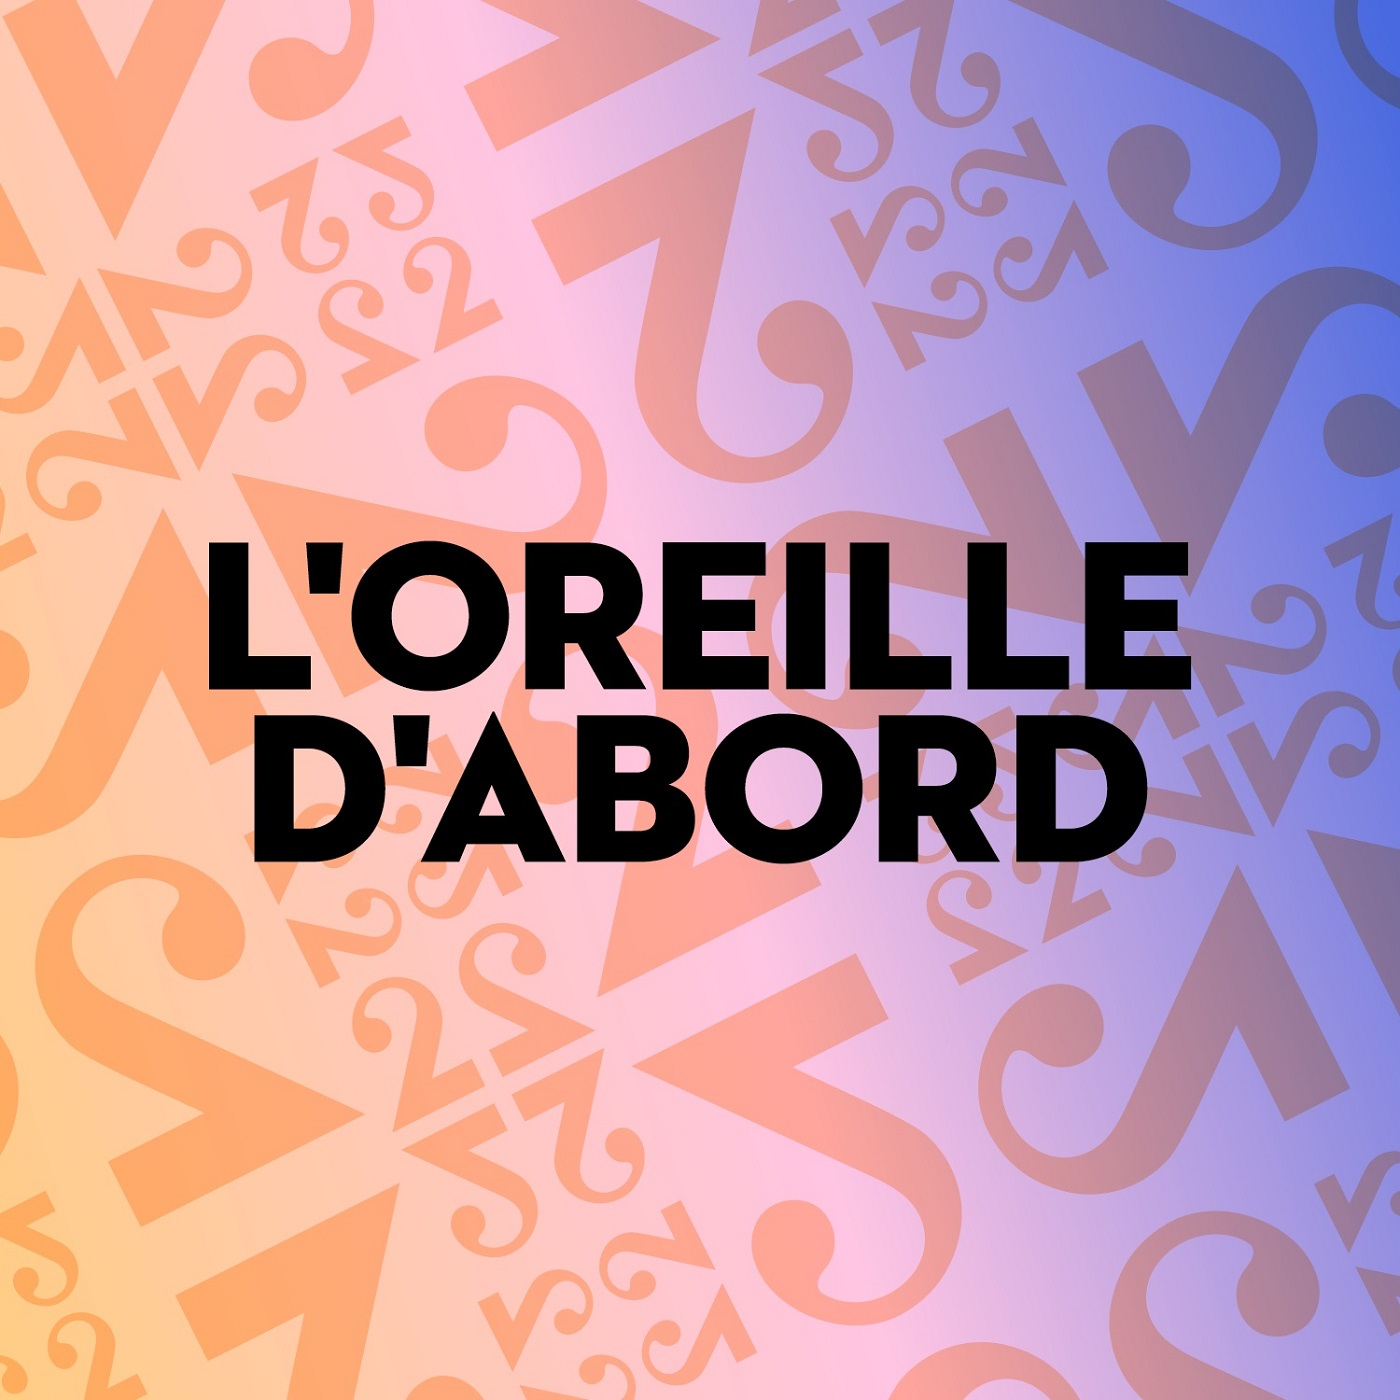 L'oreille d'abord (logo podcast) [RTS]